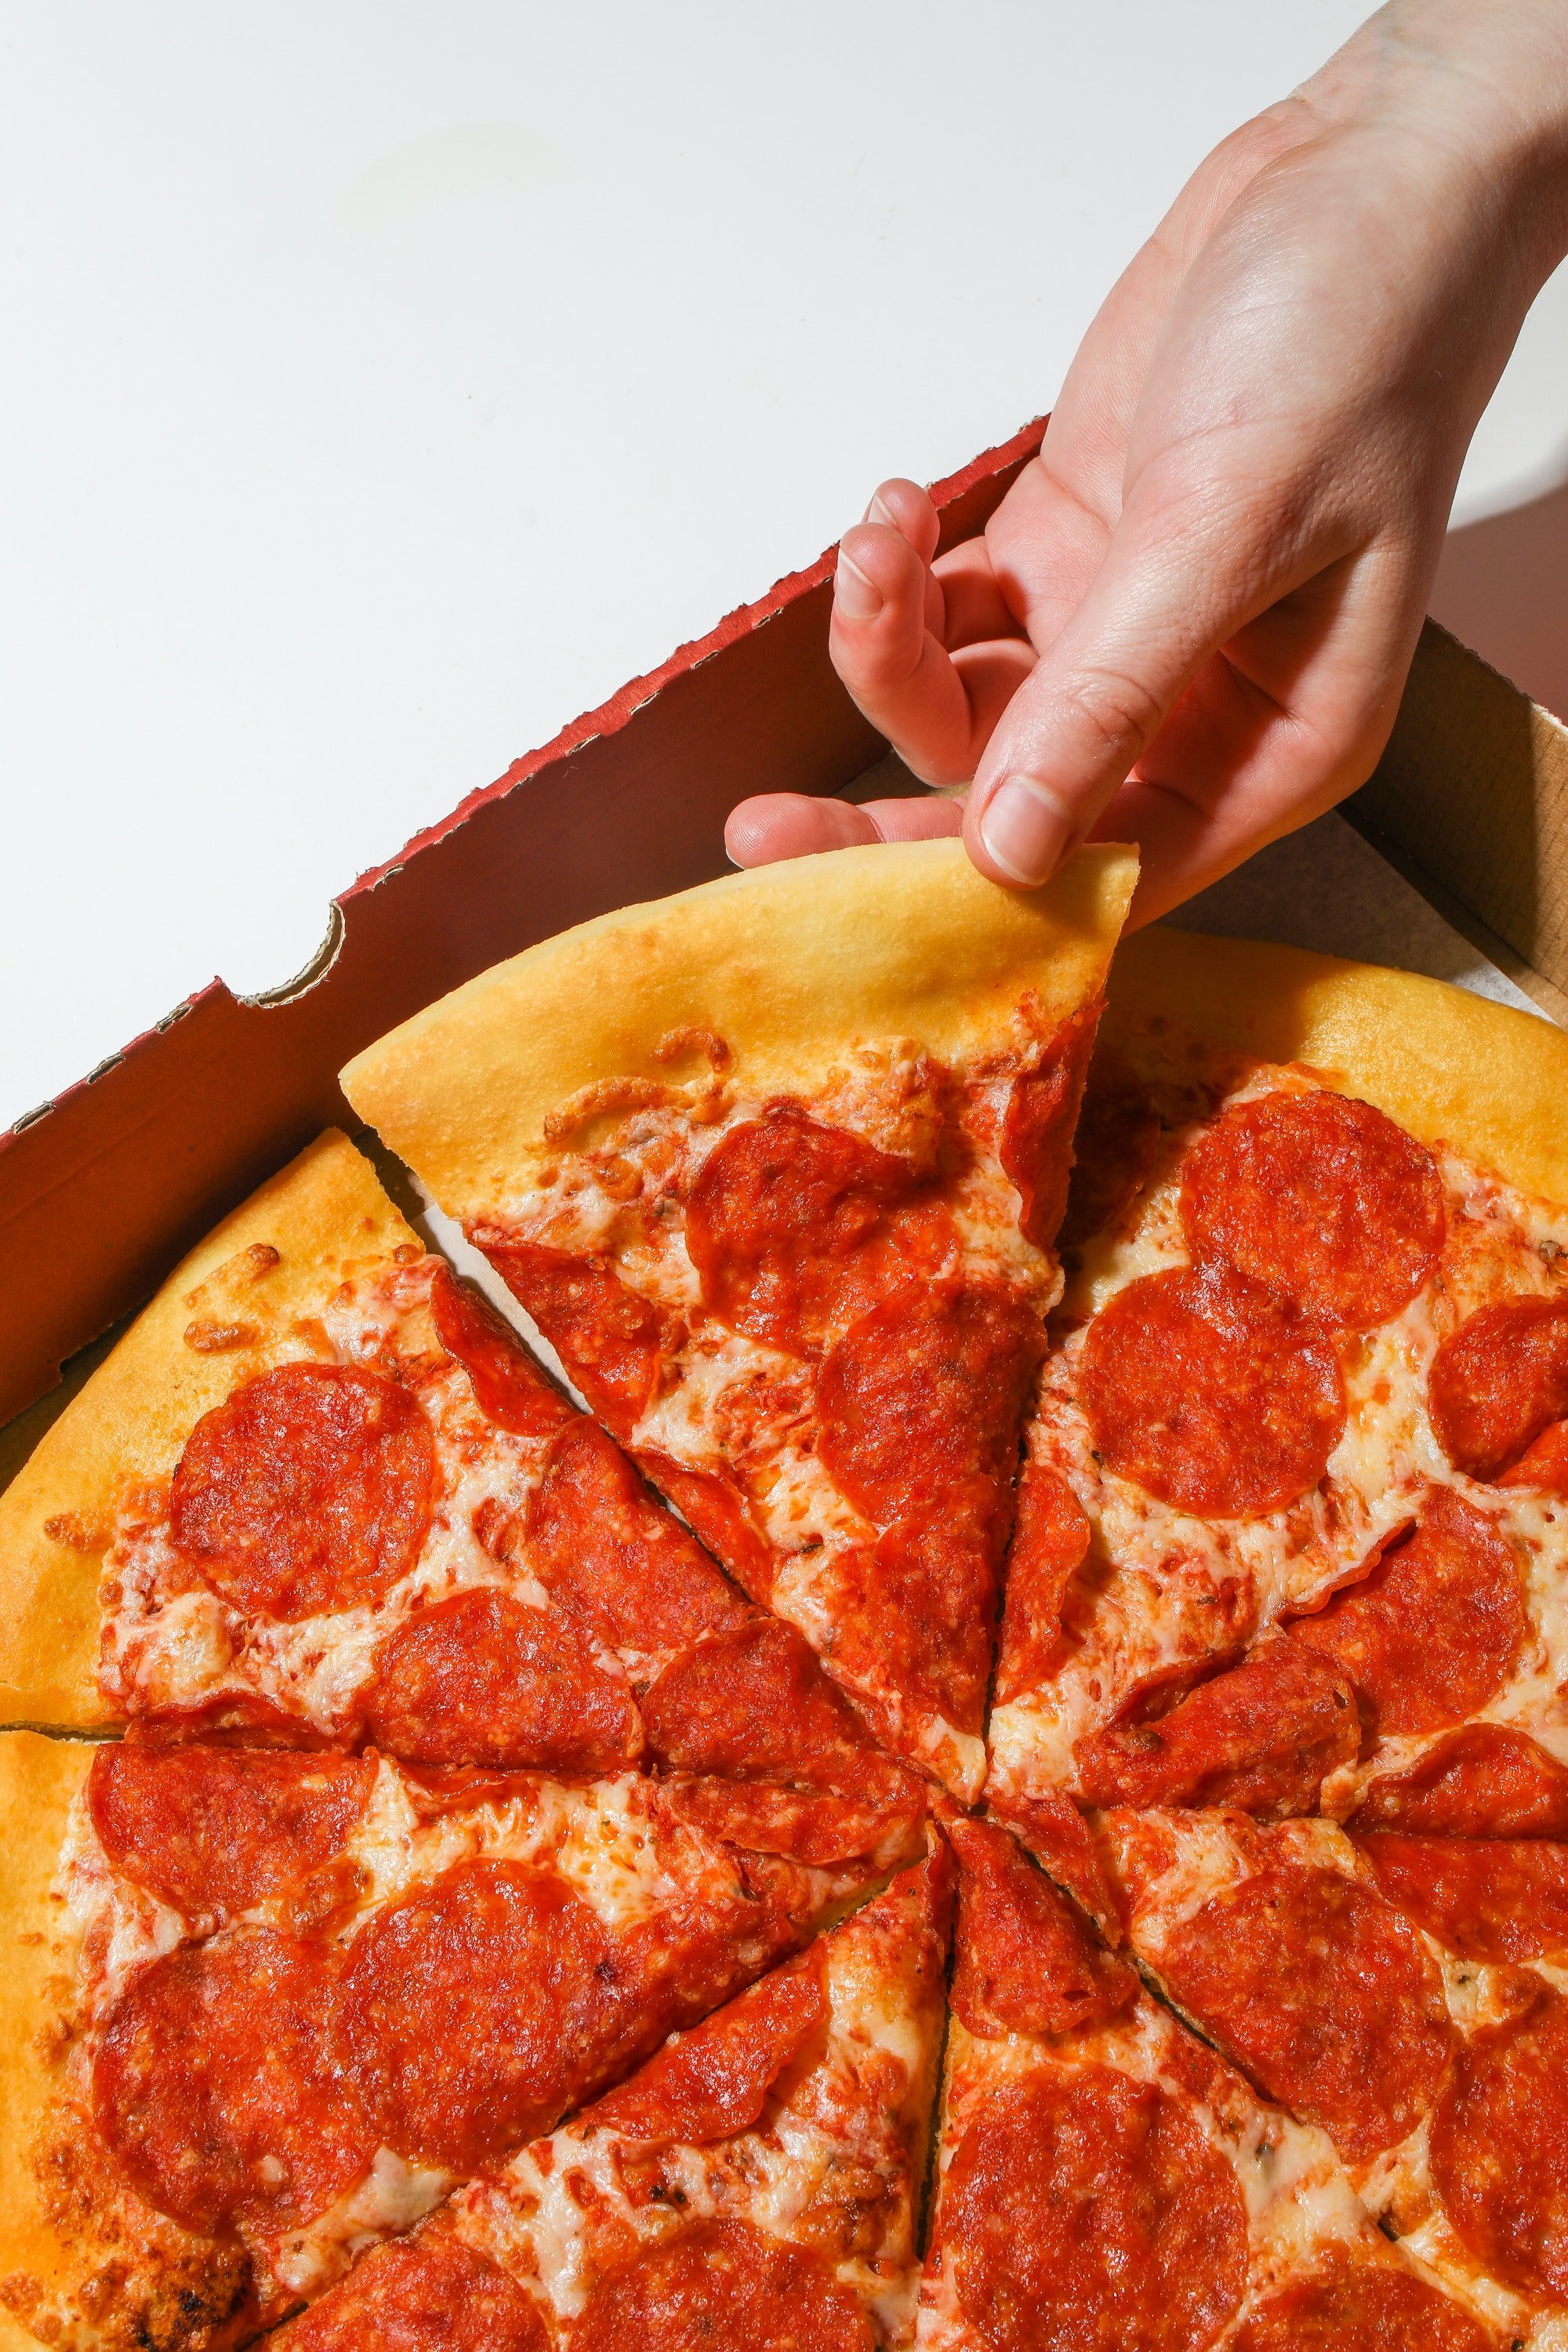 A person holding a slice of pizza.| Photo: Pexels/Polina Tankilevitch